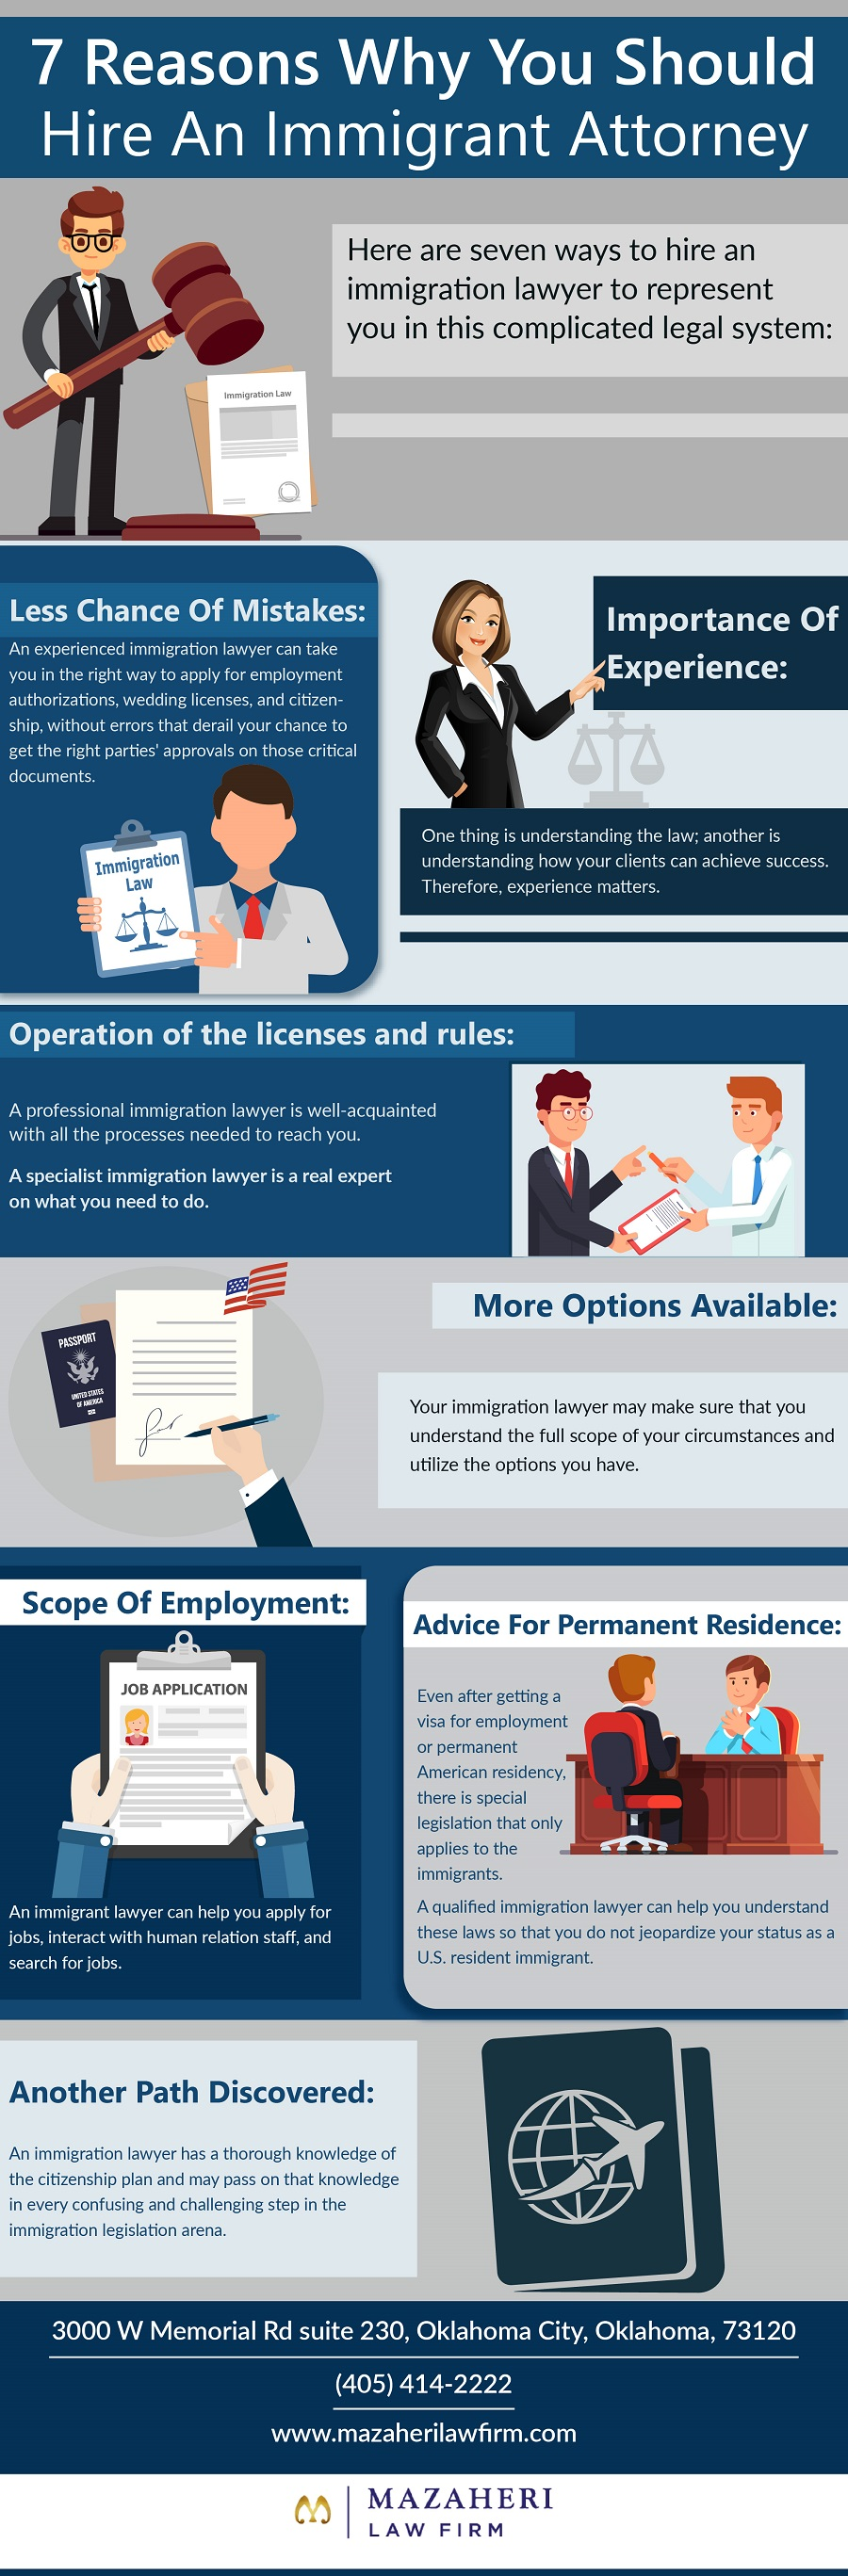 7 Reasons Why You Should Hire An Immigrant Attorney